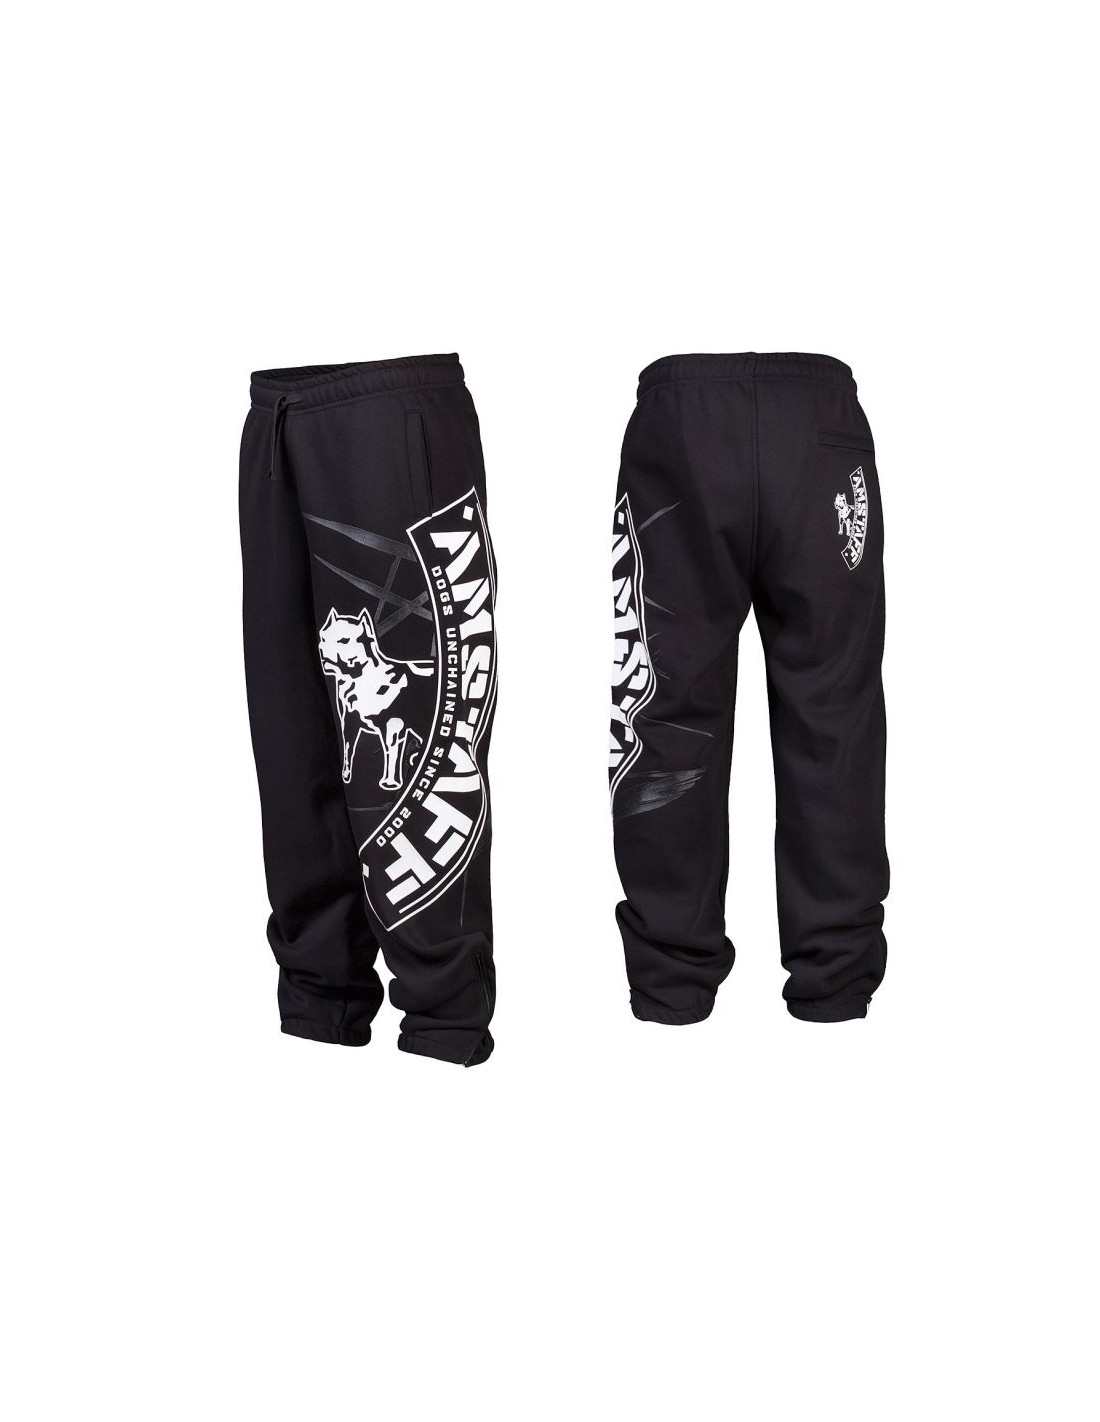 Amstaff Texor Sweatpants